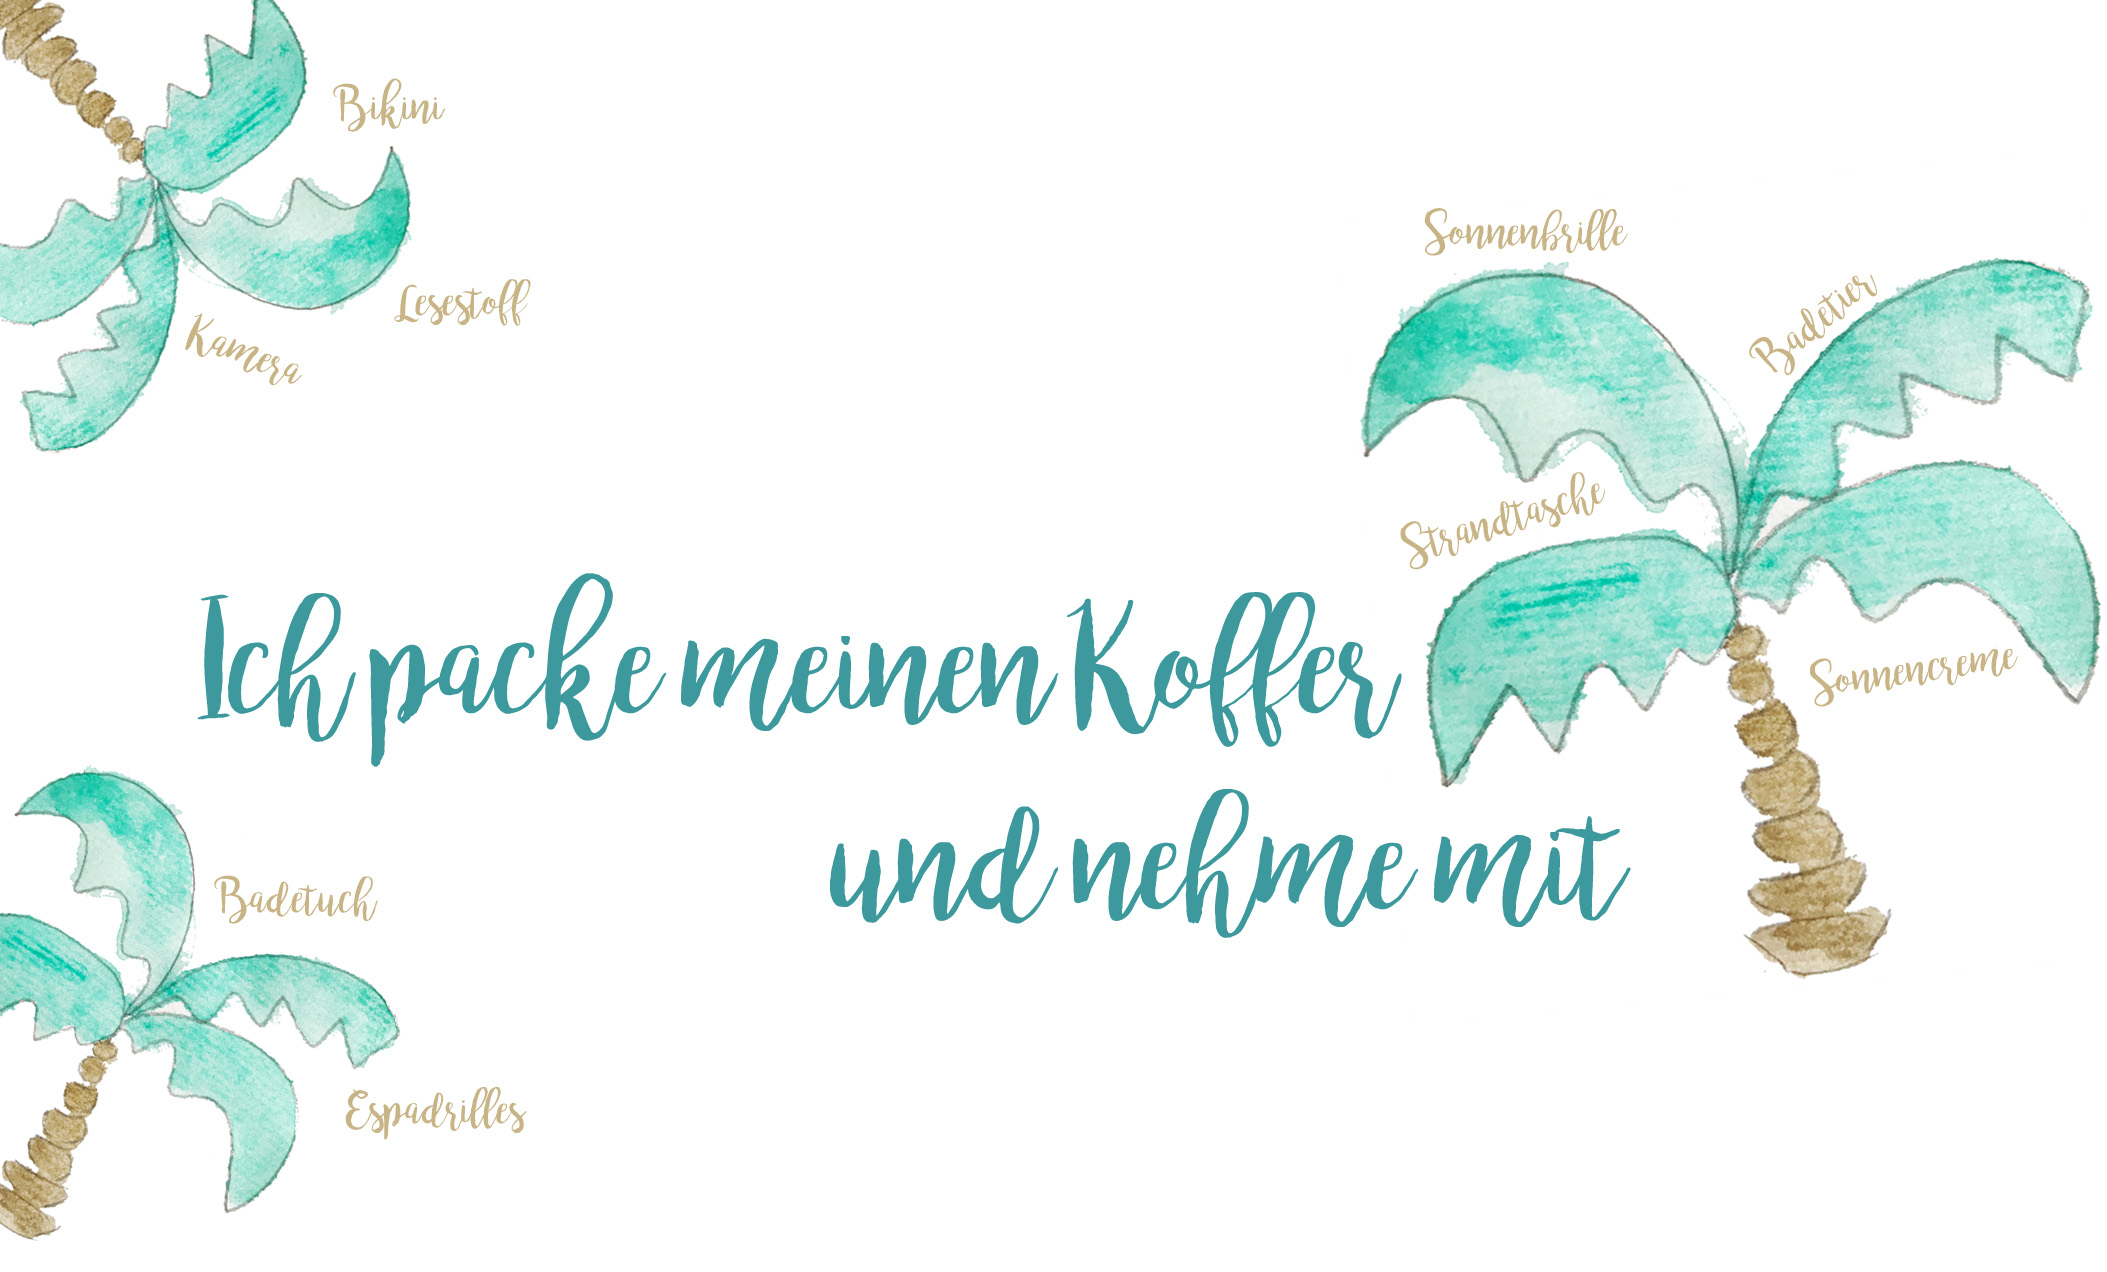 Ich packe meinen Koffer und nehme mit | I am packing my suitcase and I take with me